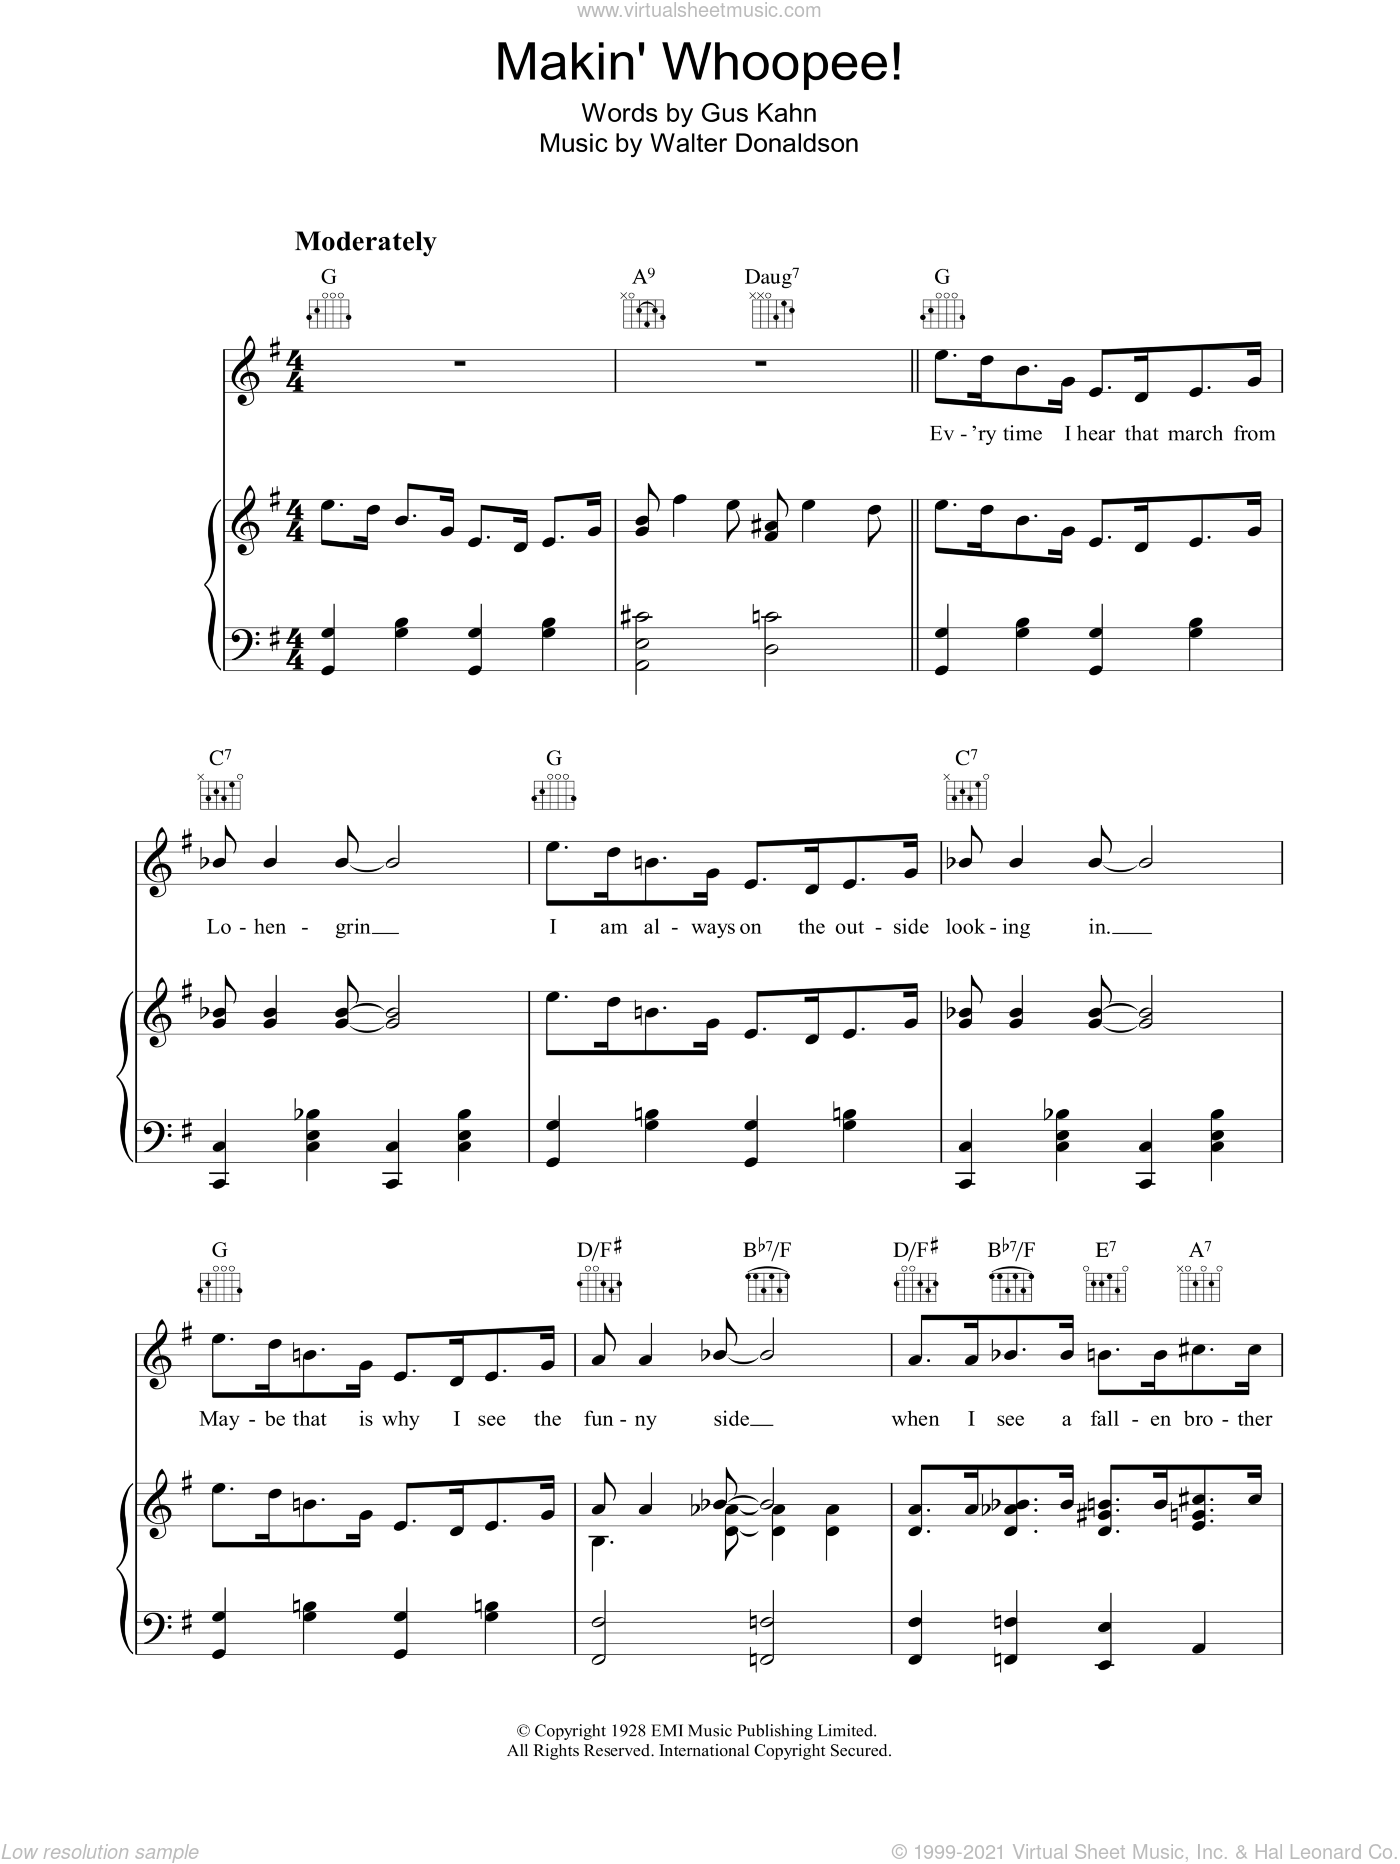 Makin' Whoopee sheet music for voice, piano or guitar by Rosemary Clooney, Eddie Cantor, Gus Kahn and Walter Donaldson, intermediate. Score Image Preview.